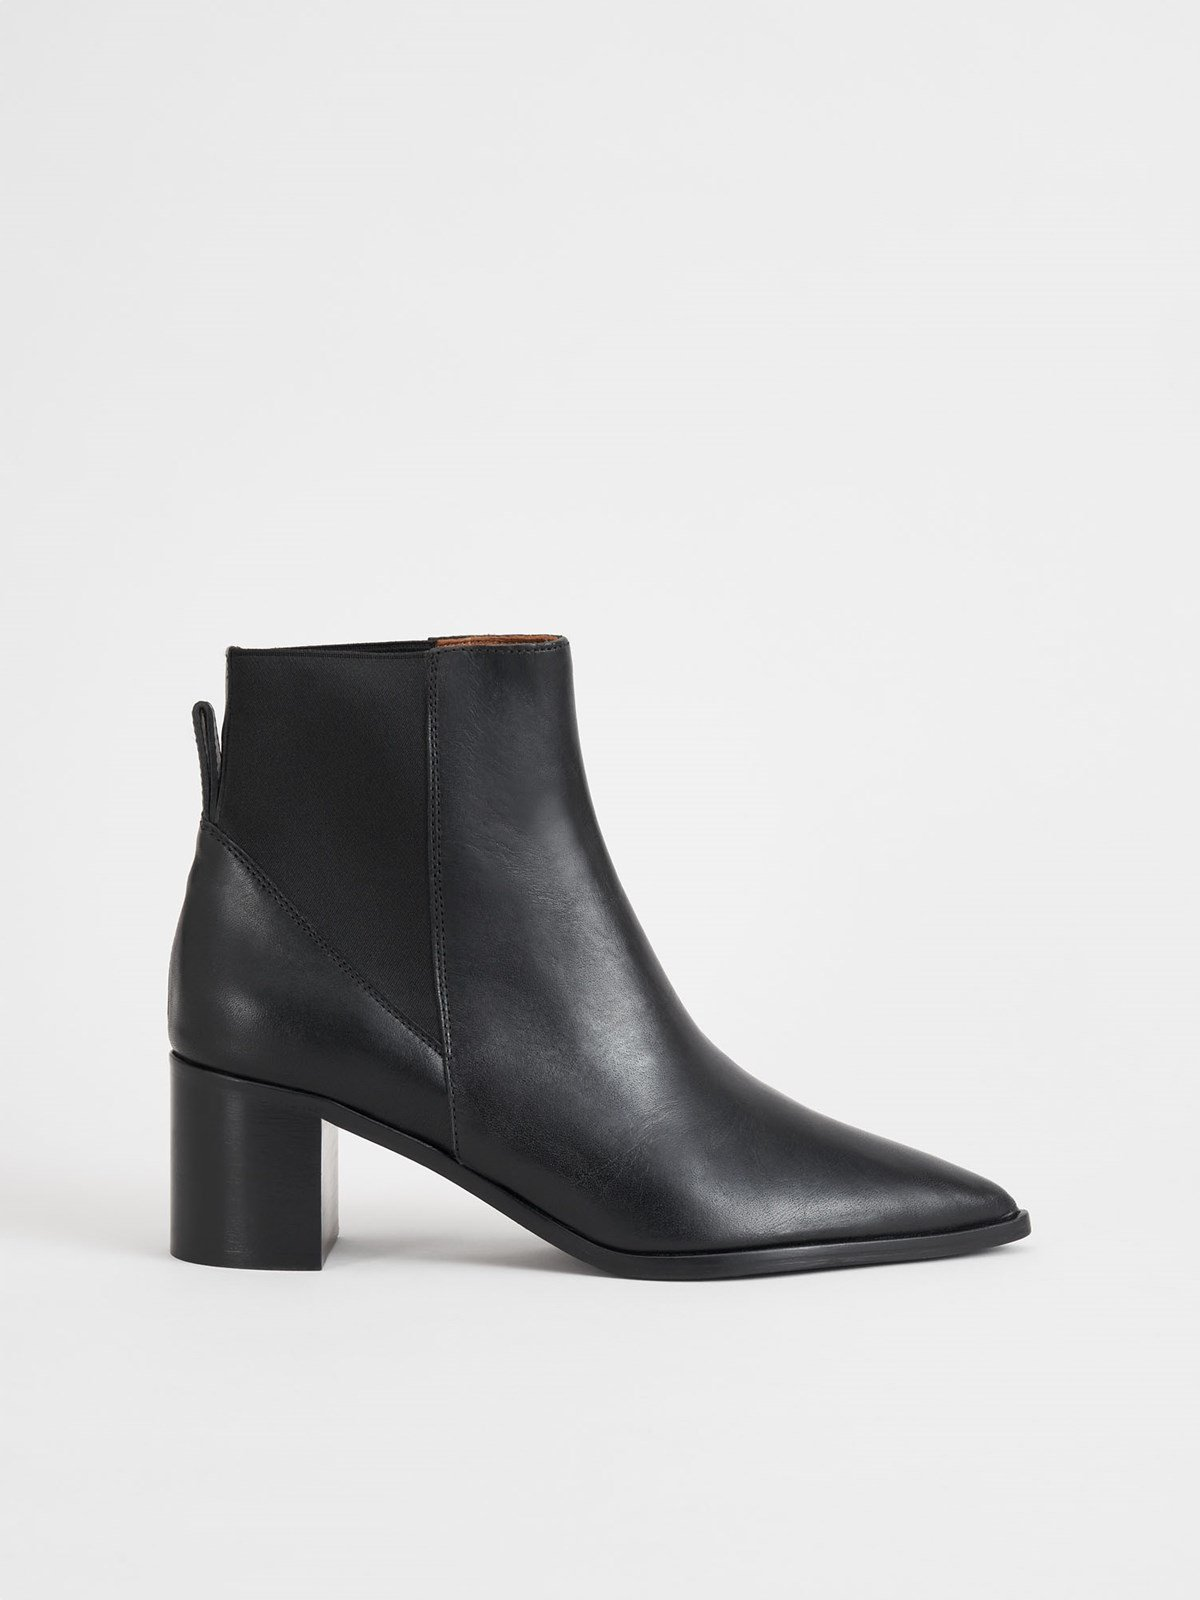 Donaci Black Ankle Boots